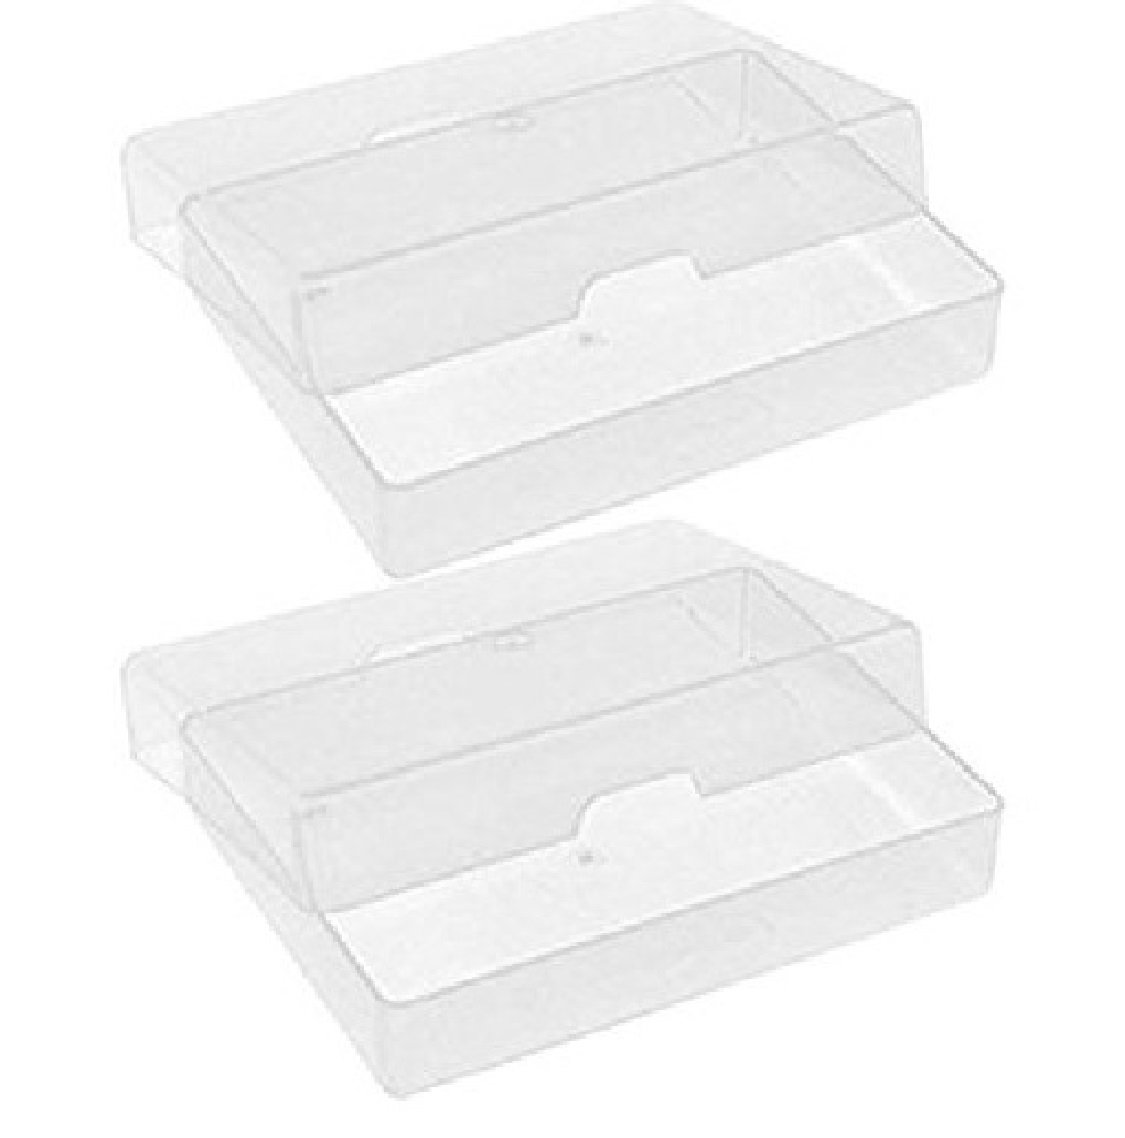 Business Card Plastic Storage Box Image collections - Card Design ...